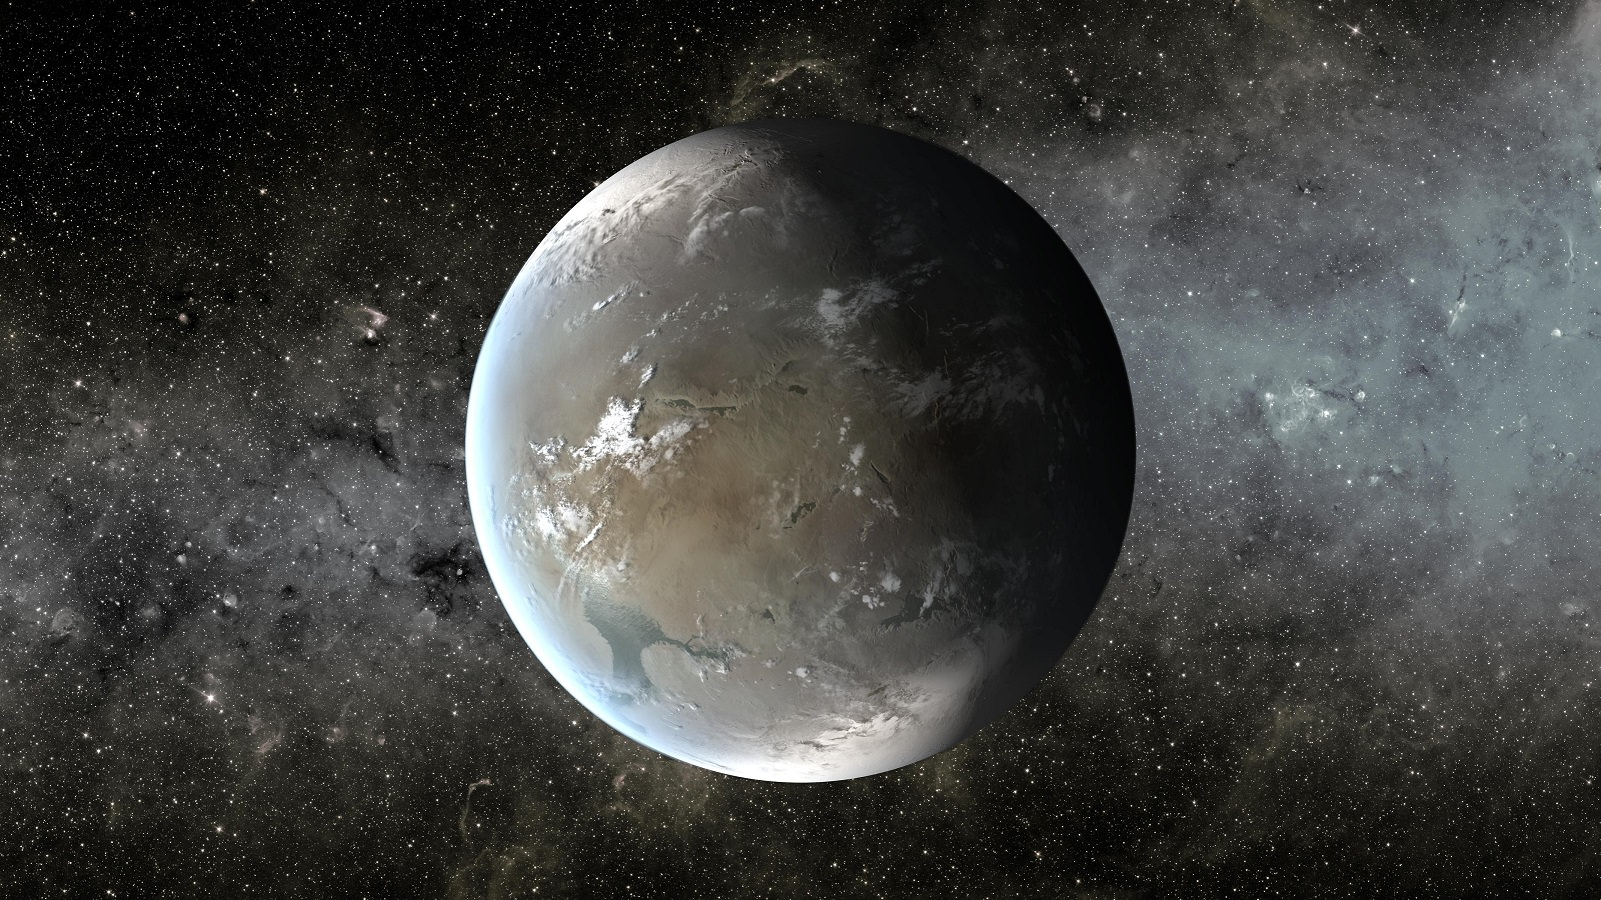 Artists impression of a Super-Earth, a class of planet that has many times the mass of Earth, but less than a Uranus or Neptune-sized planet. Credit: NASA/Ames/JPL-Caltech